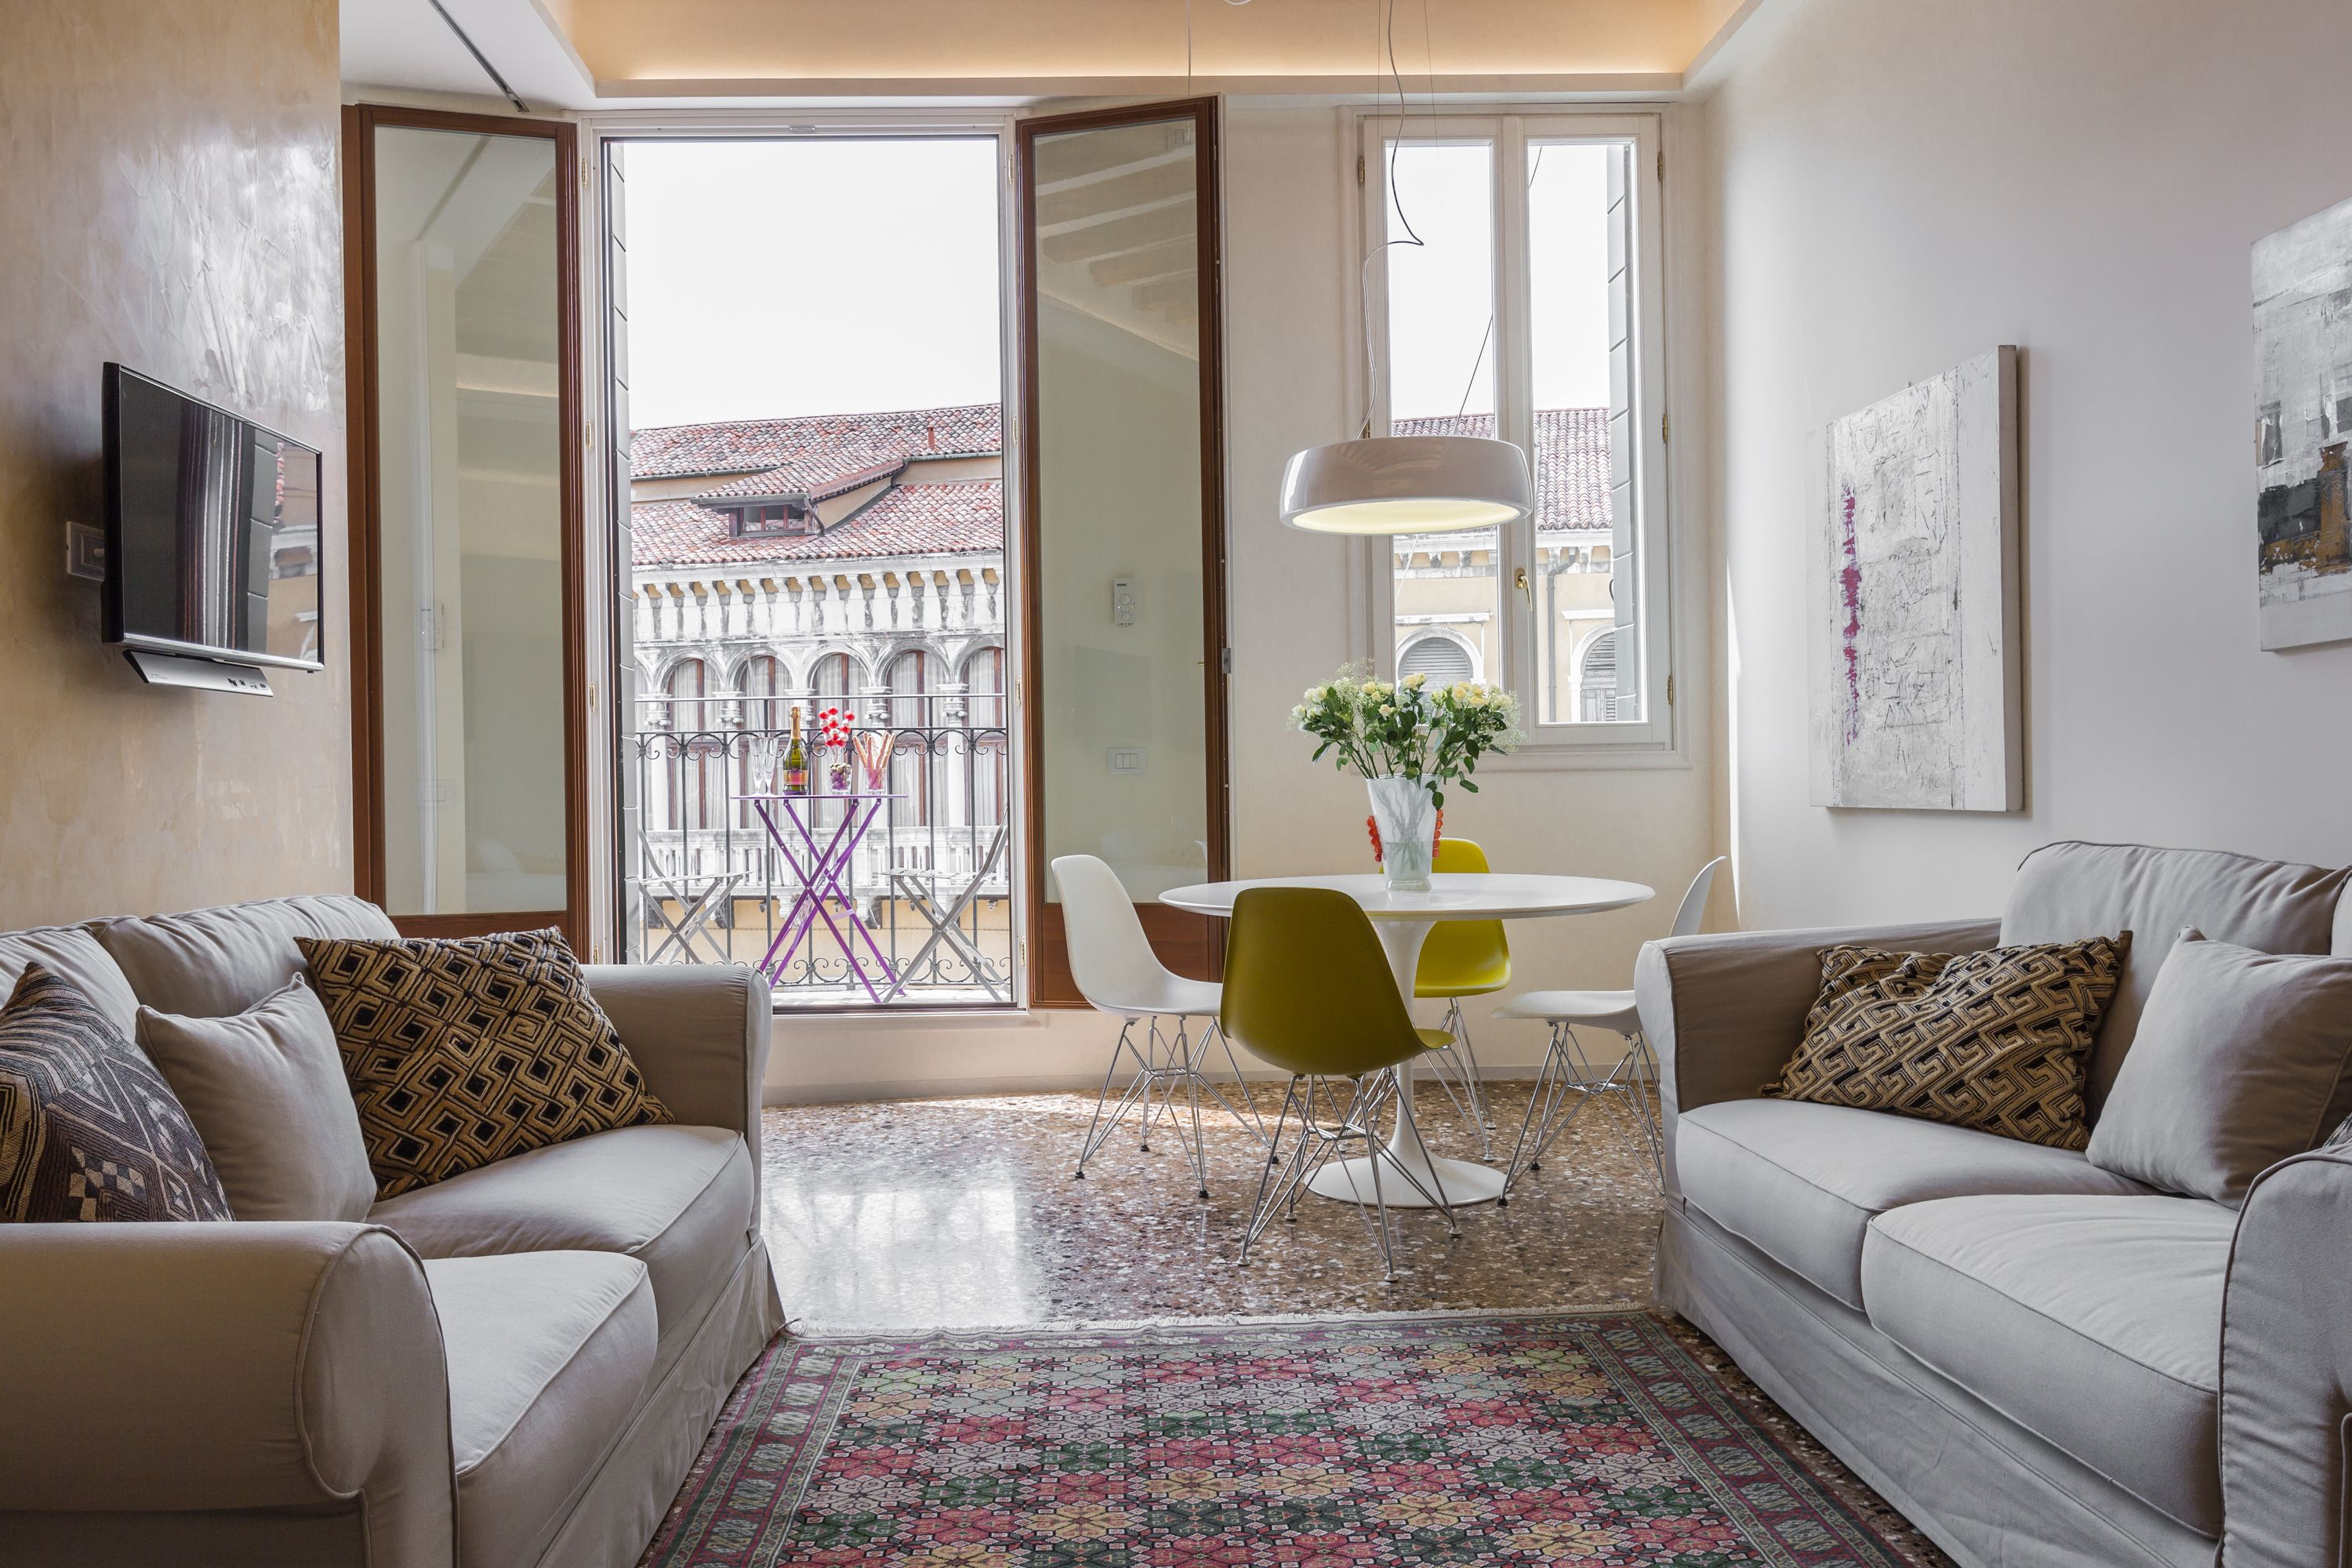 Manin apartment living room with balcony and panoramic view